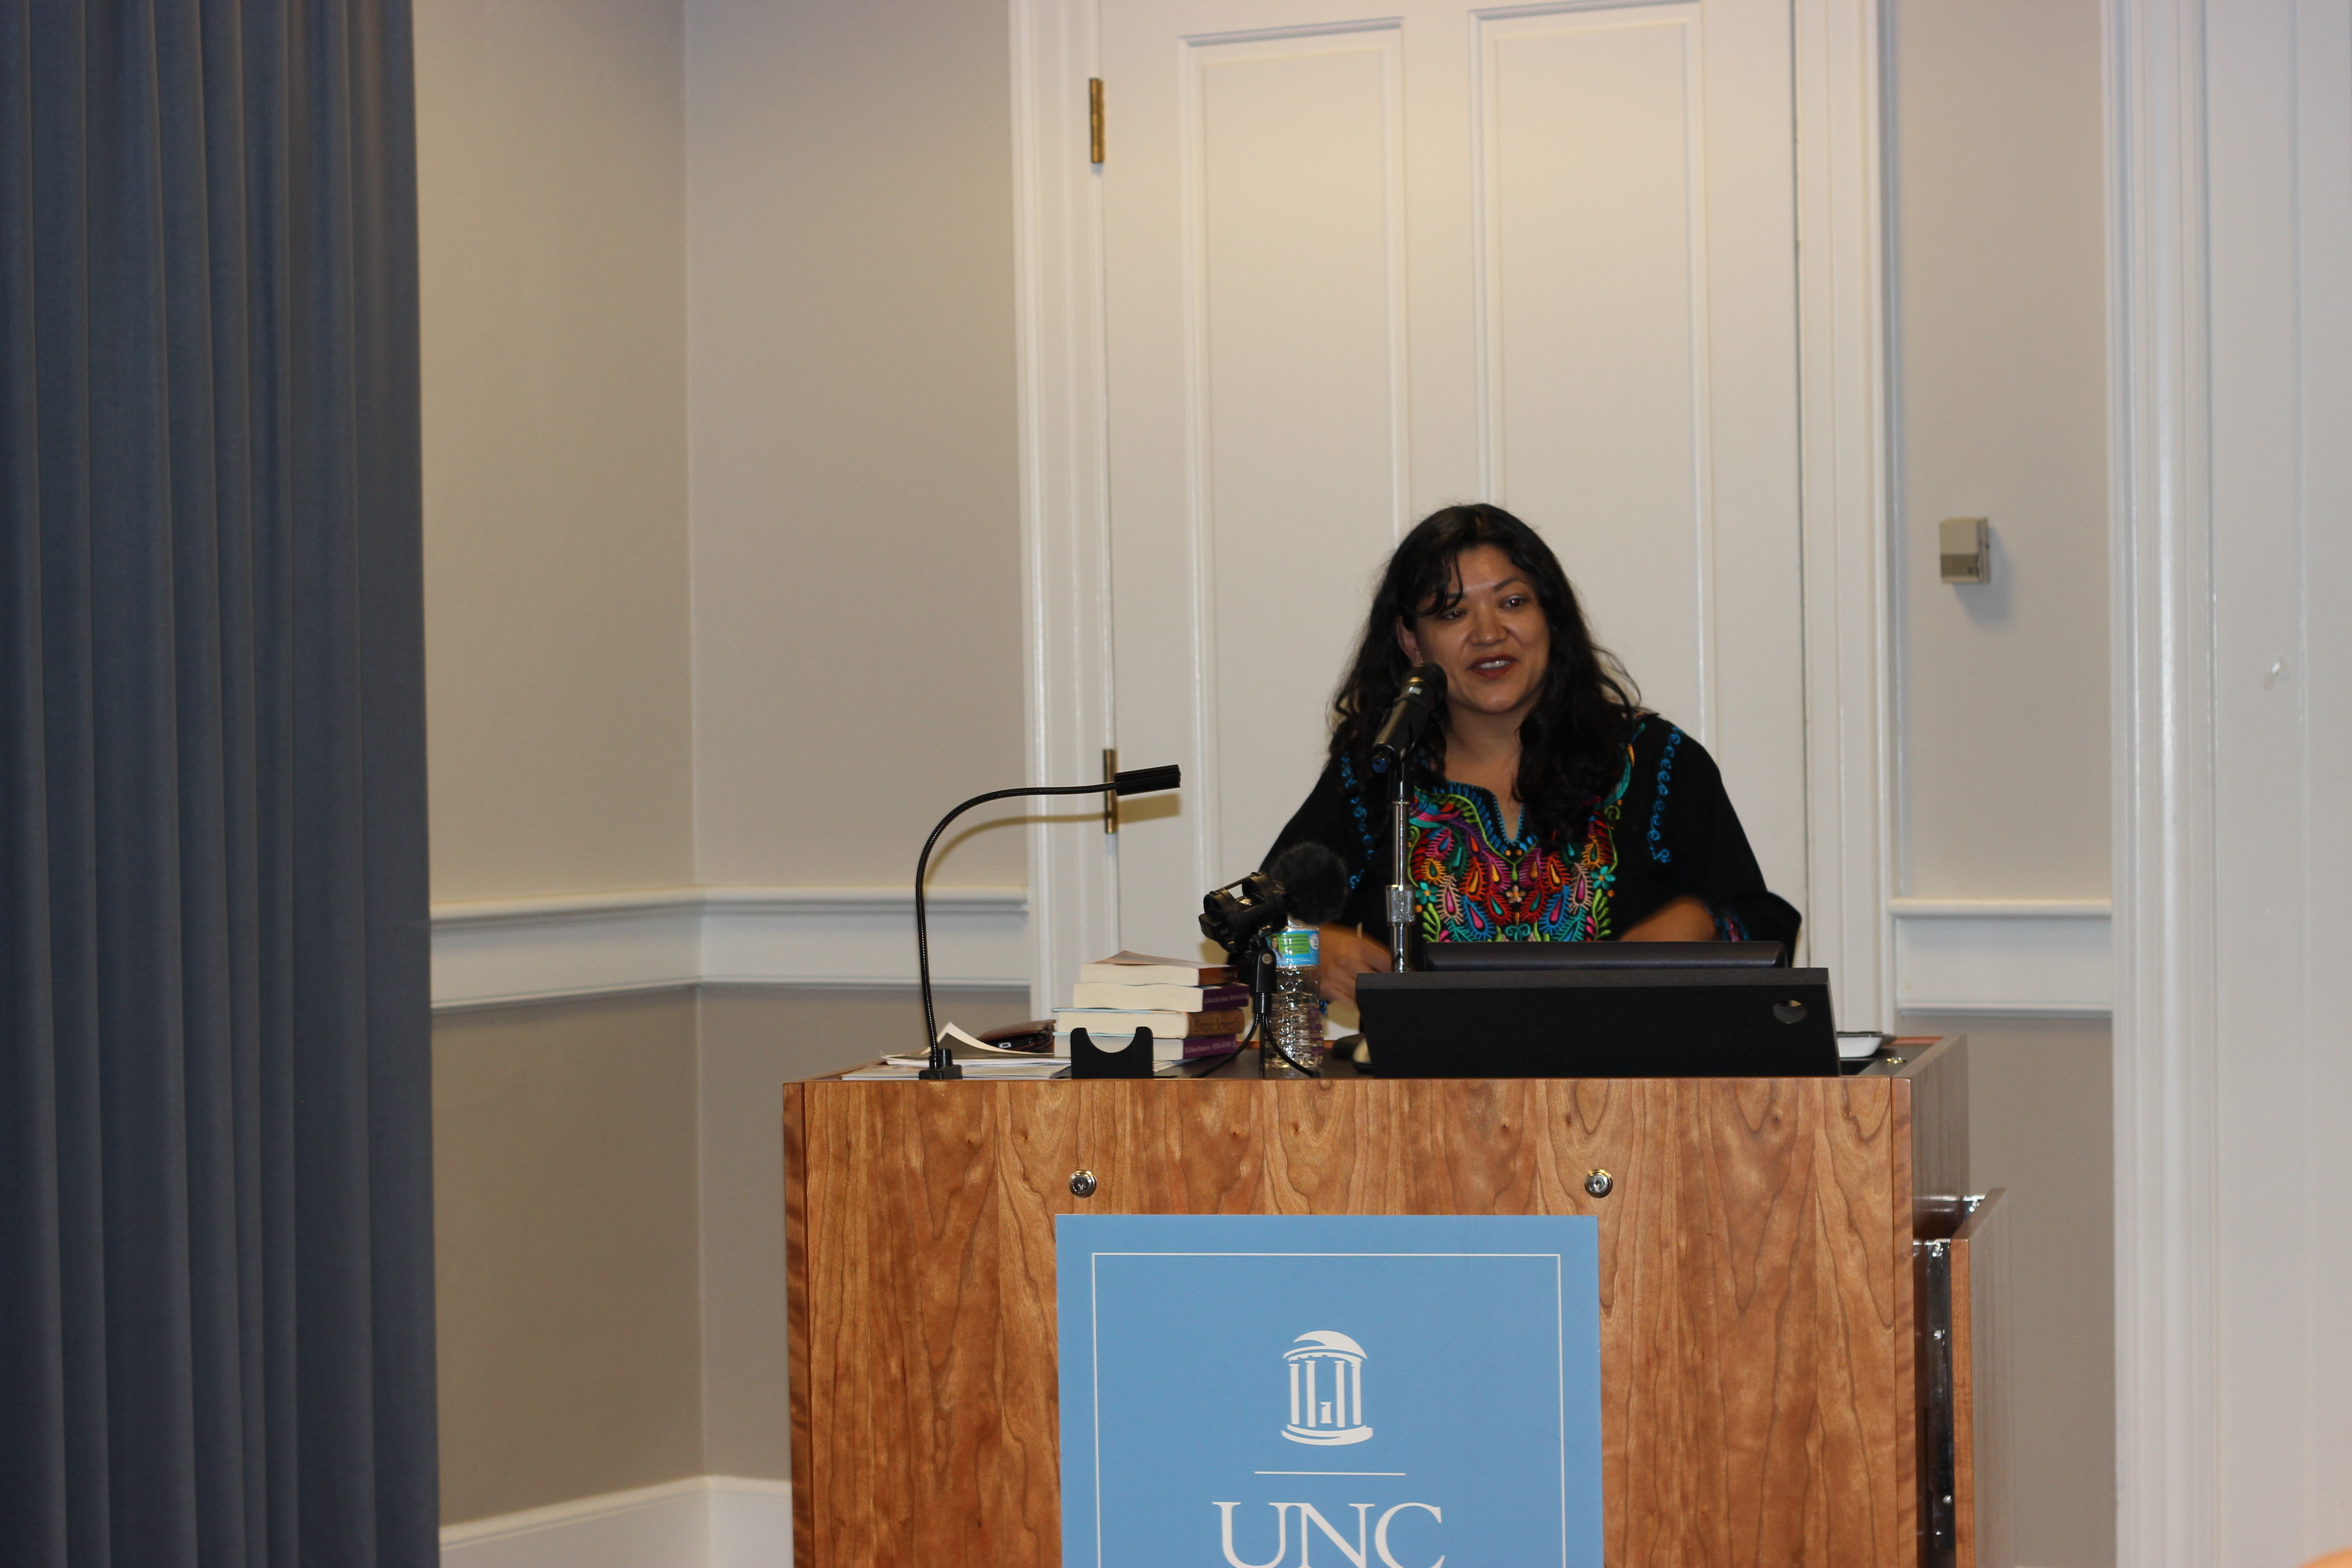 Reyna Grande standing at a podium and looking to her left as she speaks into a microphone.